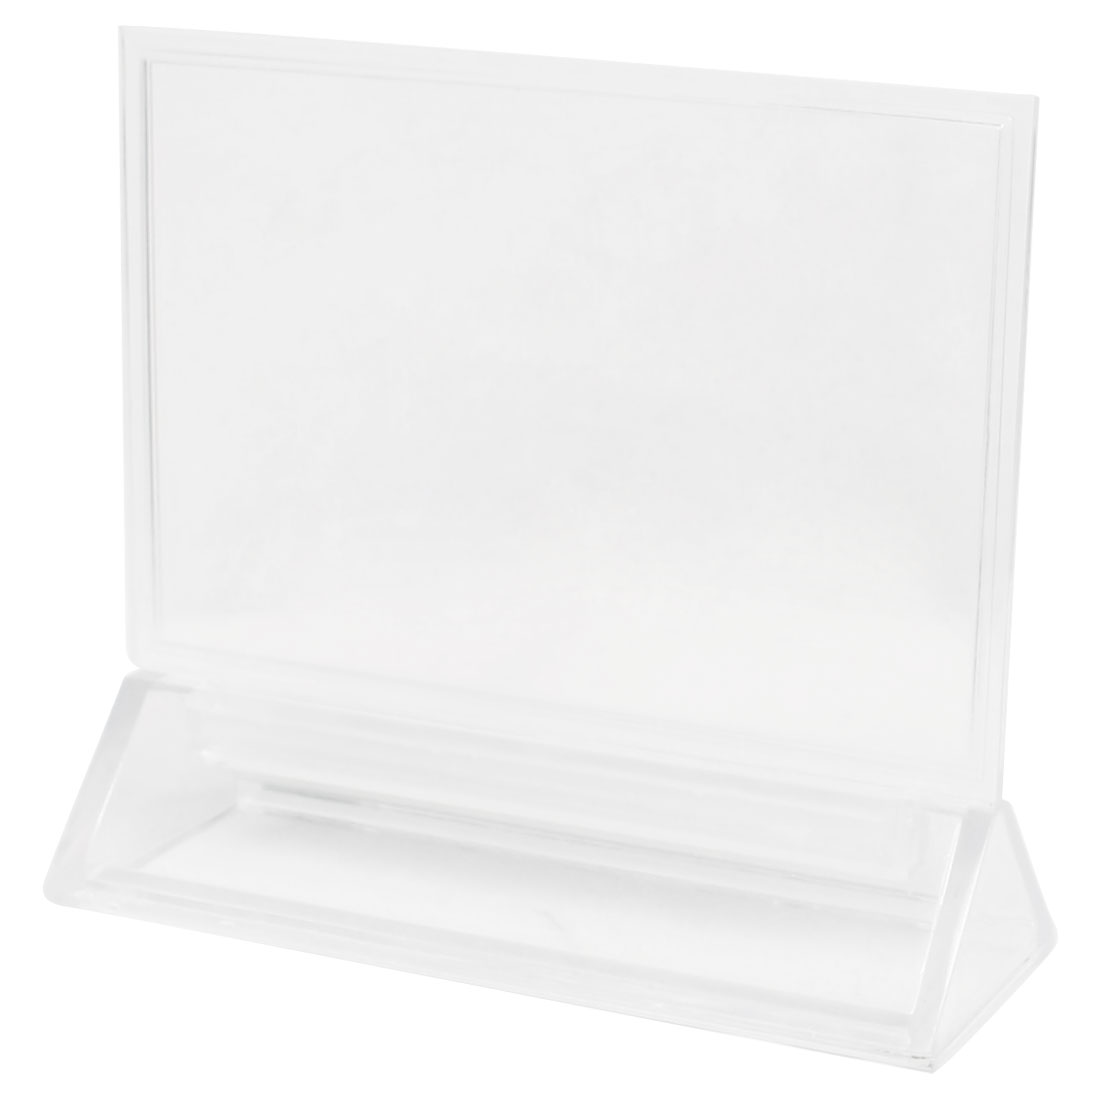 Fair Meeting Clear Detachable Plastic Table Display Holder 15 x 10cm